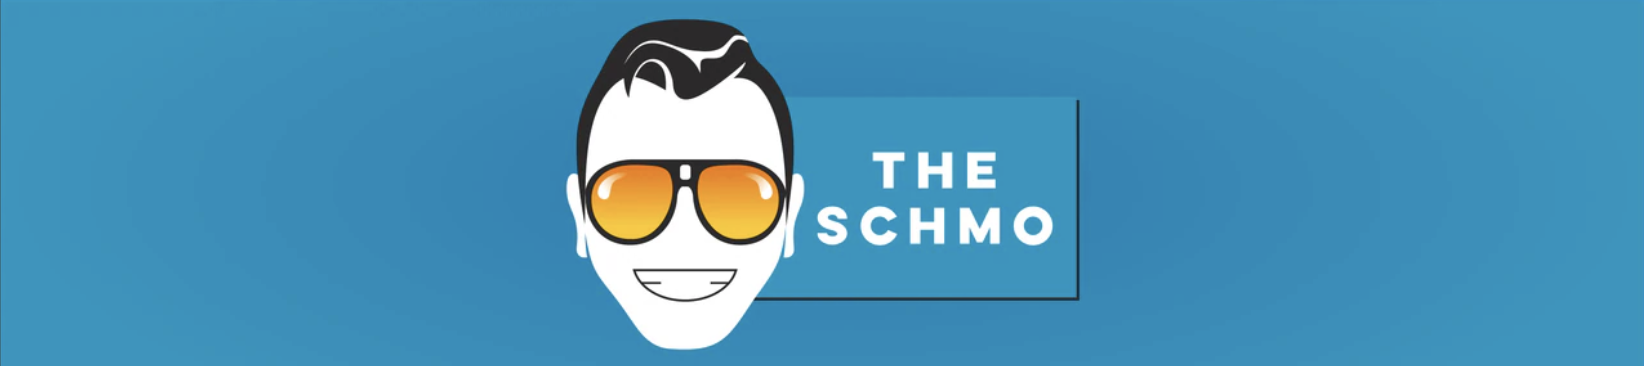 Shop the latest Schmo merch, limited availability!